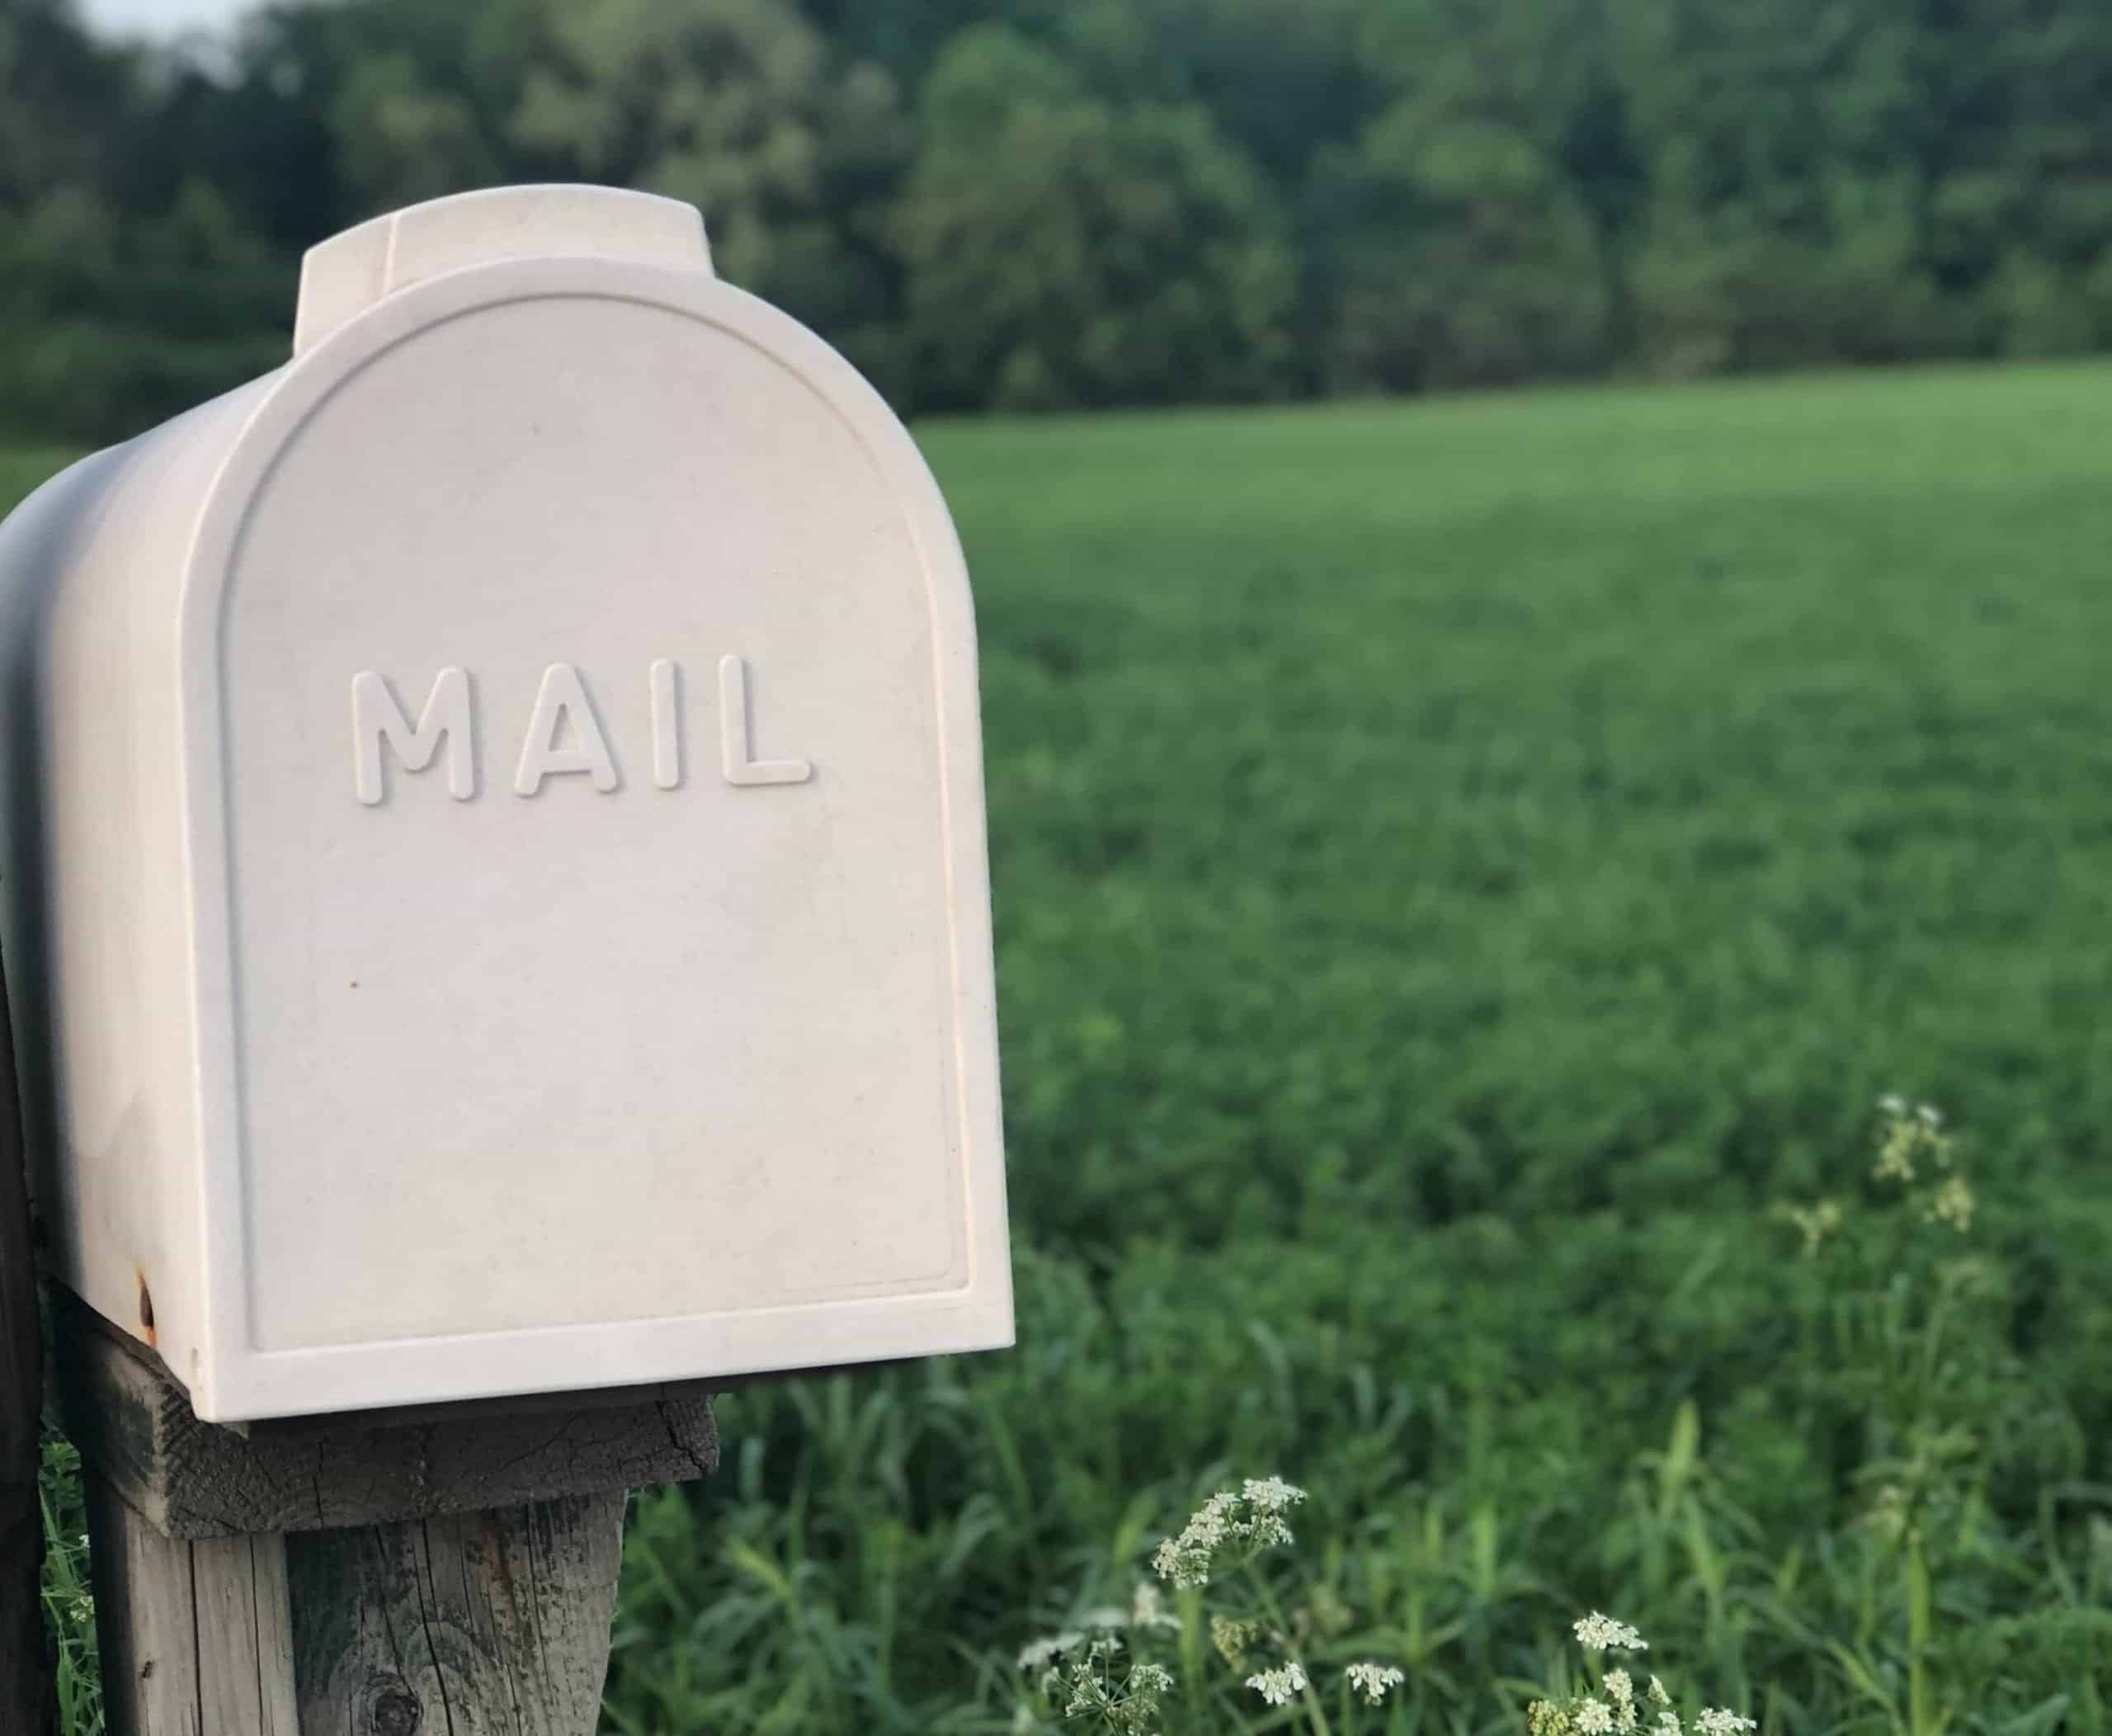 Postbox in a field.